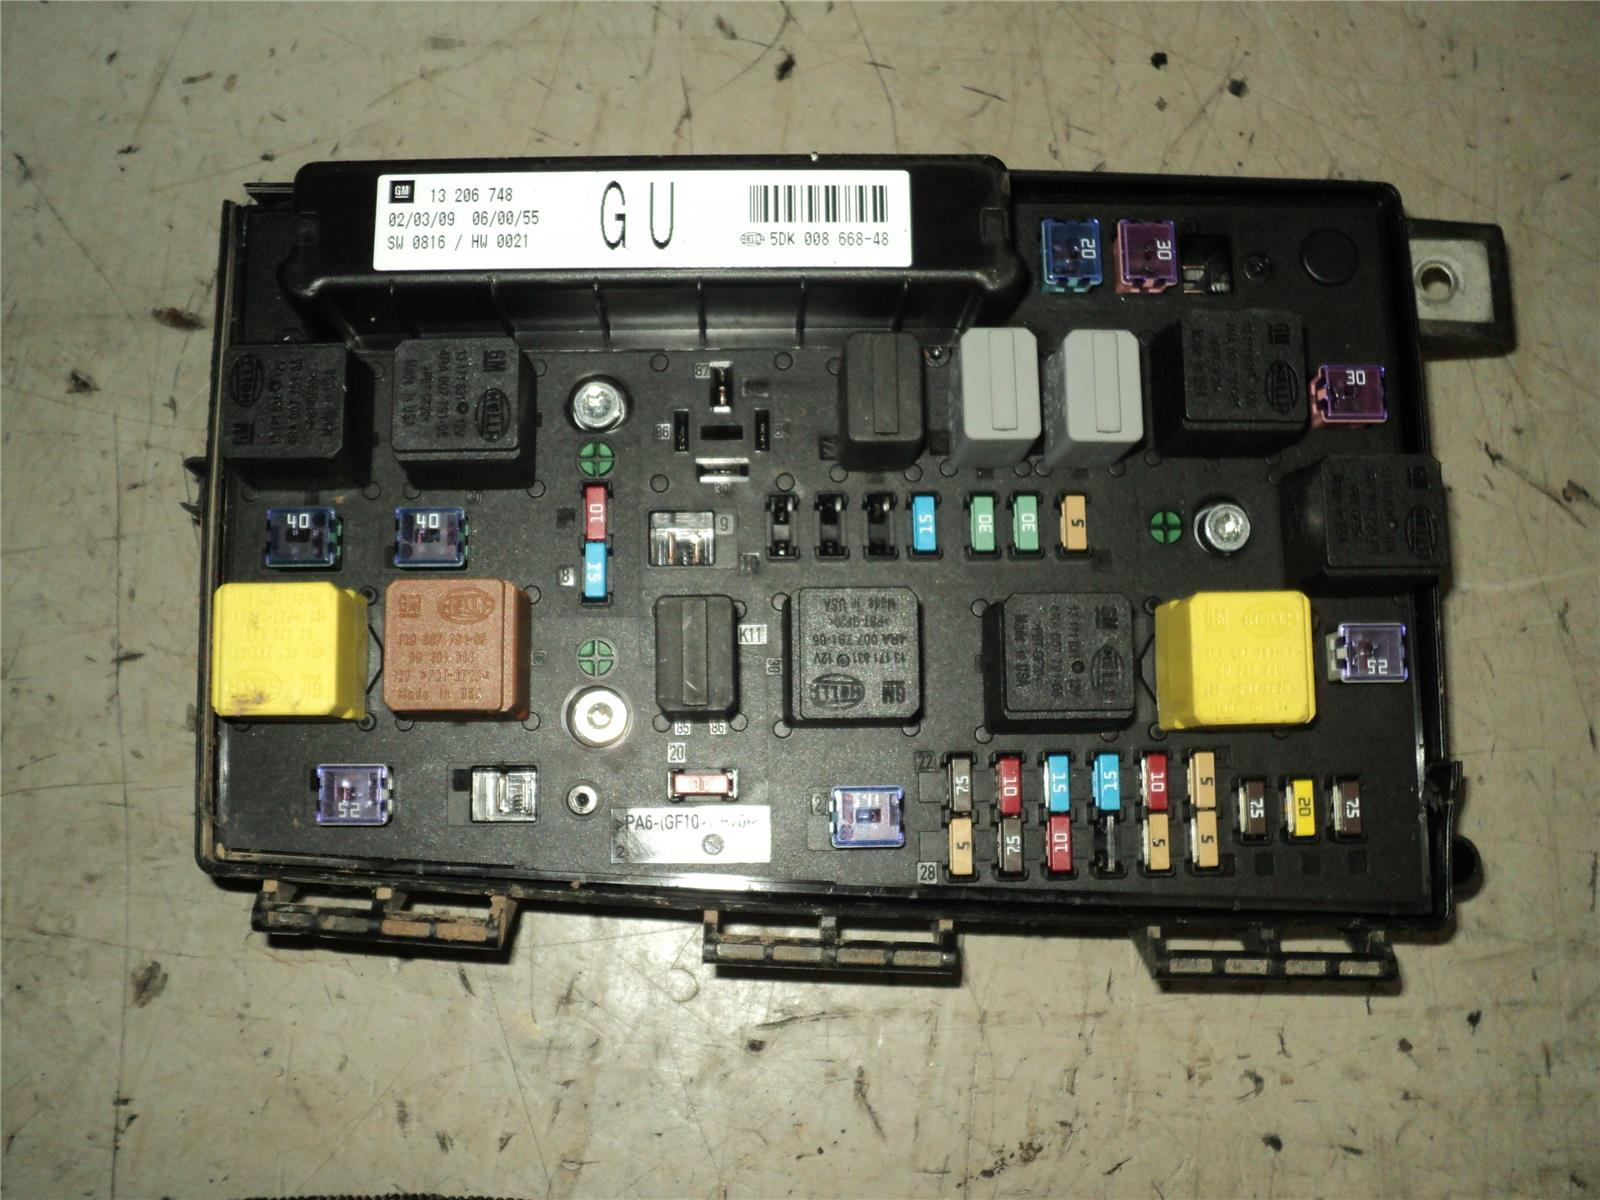 Fuse Box In Vauxhall Astra Free Wiring Diagram For You 57 2006 To 2011 Diesel Manual H 2003